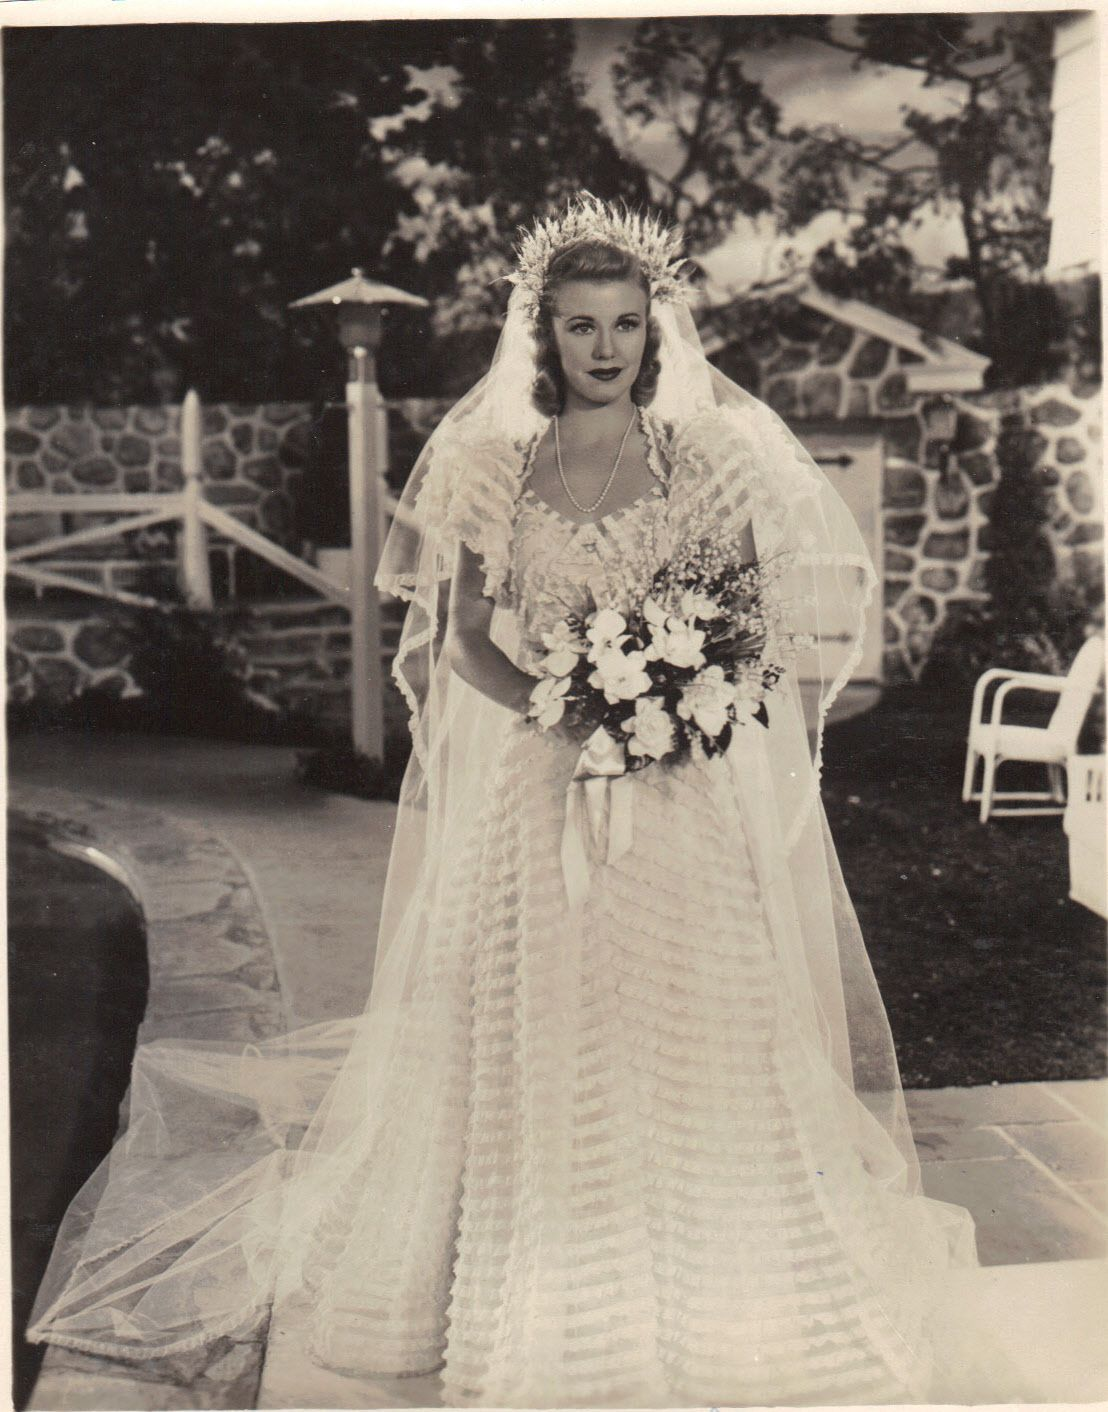 Ginger Rogers is a beautiful bride as Amanda, without the black